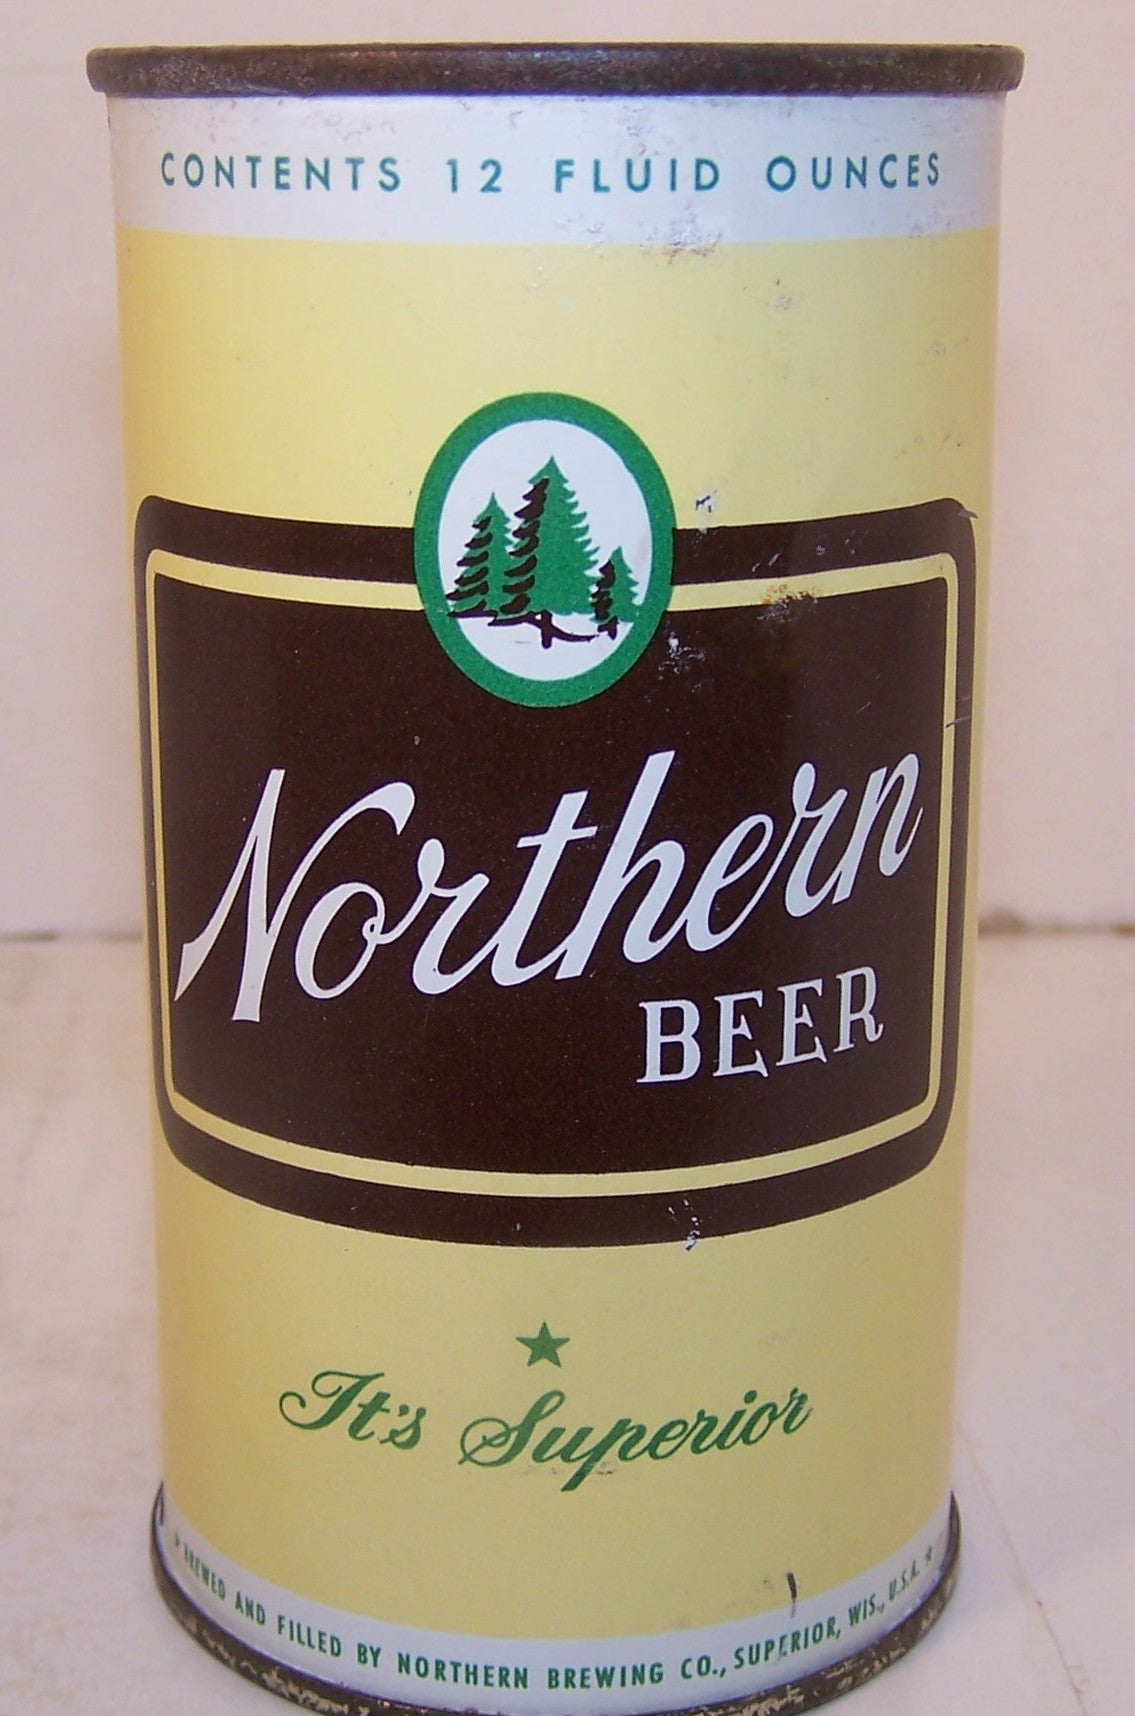 Northern Beer, USBC 103-34 Grade 1-